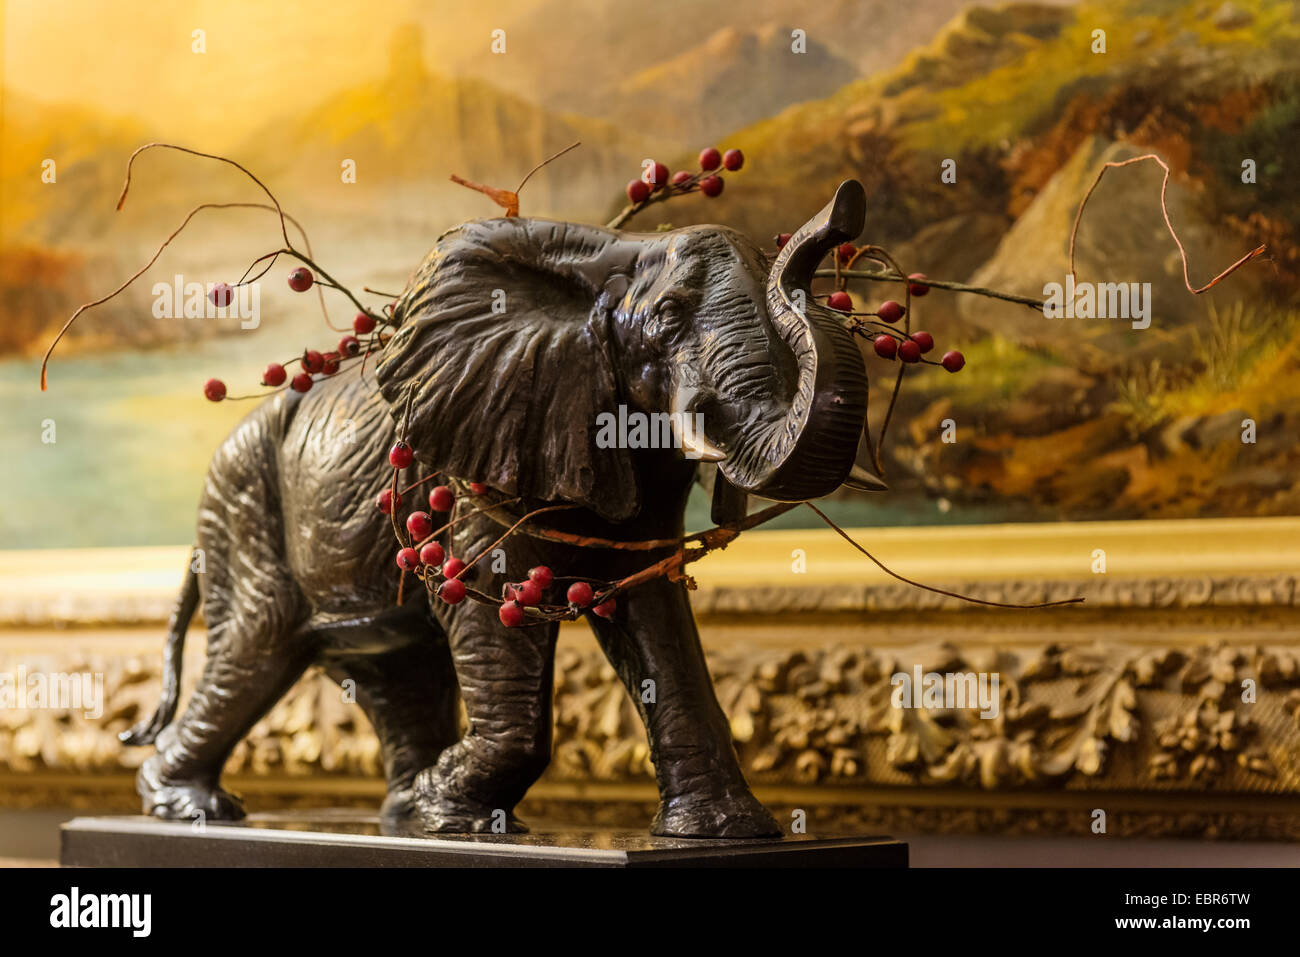 a sprig of holly adds a festive touch to a statue of an elephant - Stock Image